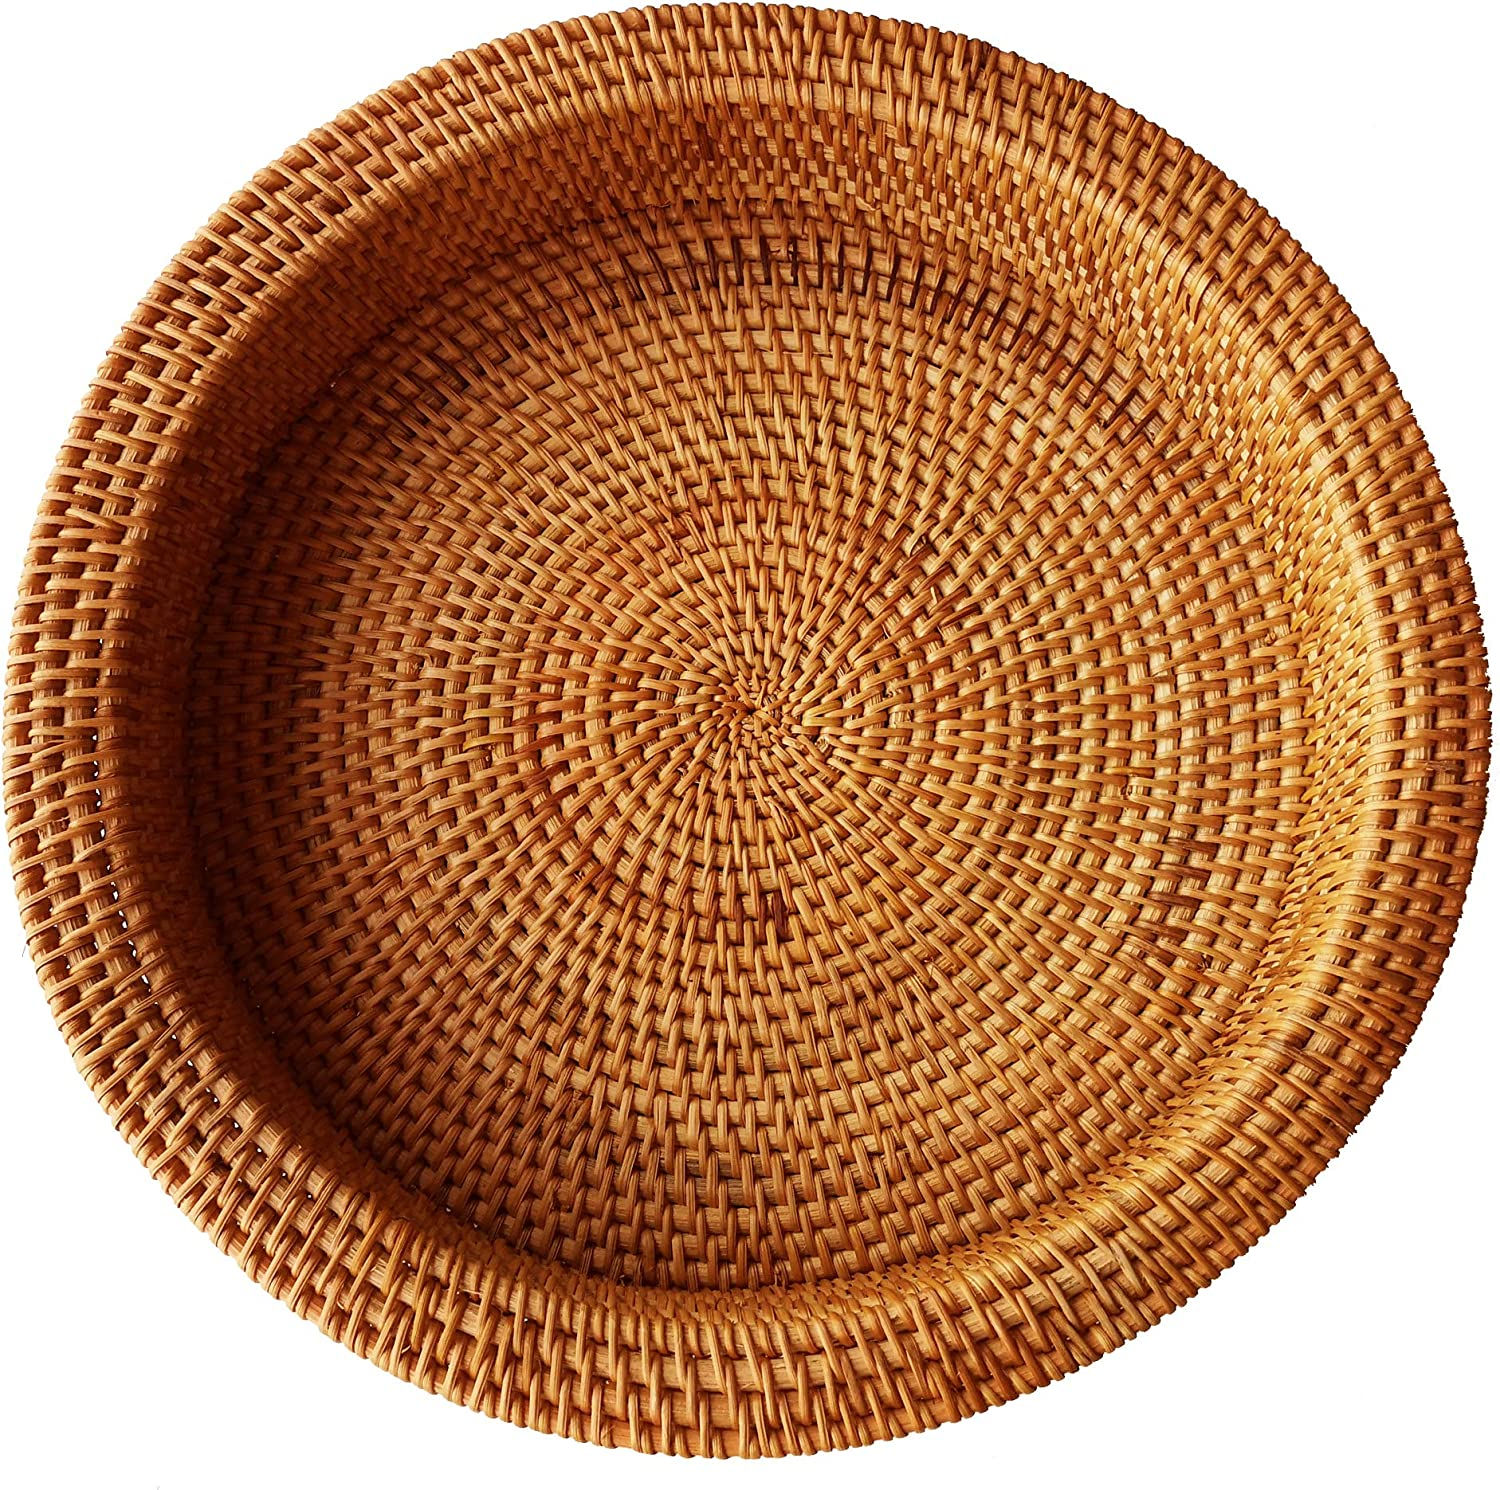 Amazon Com Rattan Handwoven Round High Wall Severing Tray Food